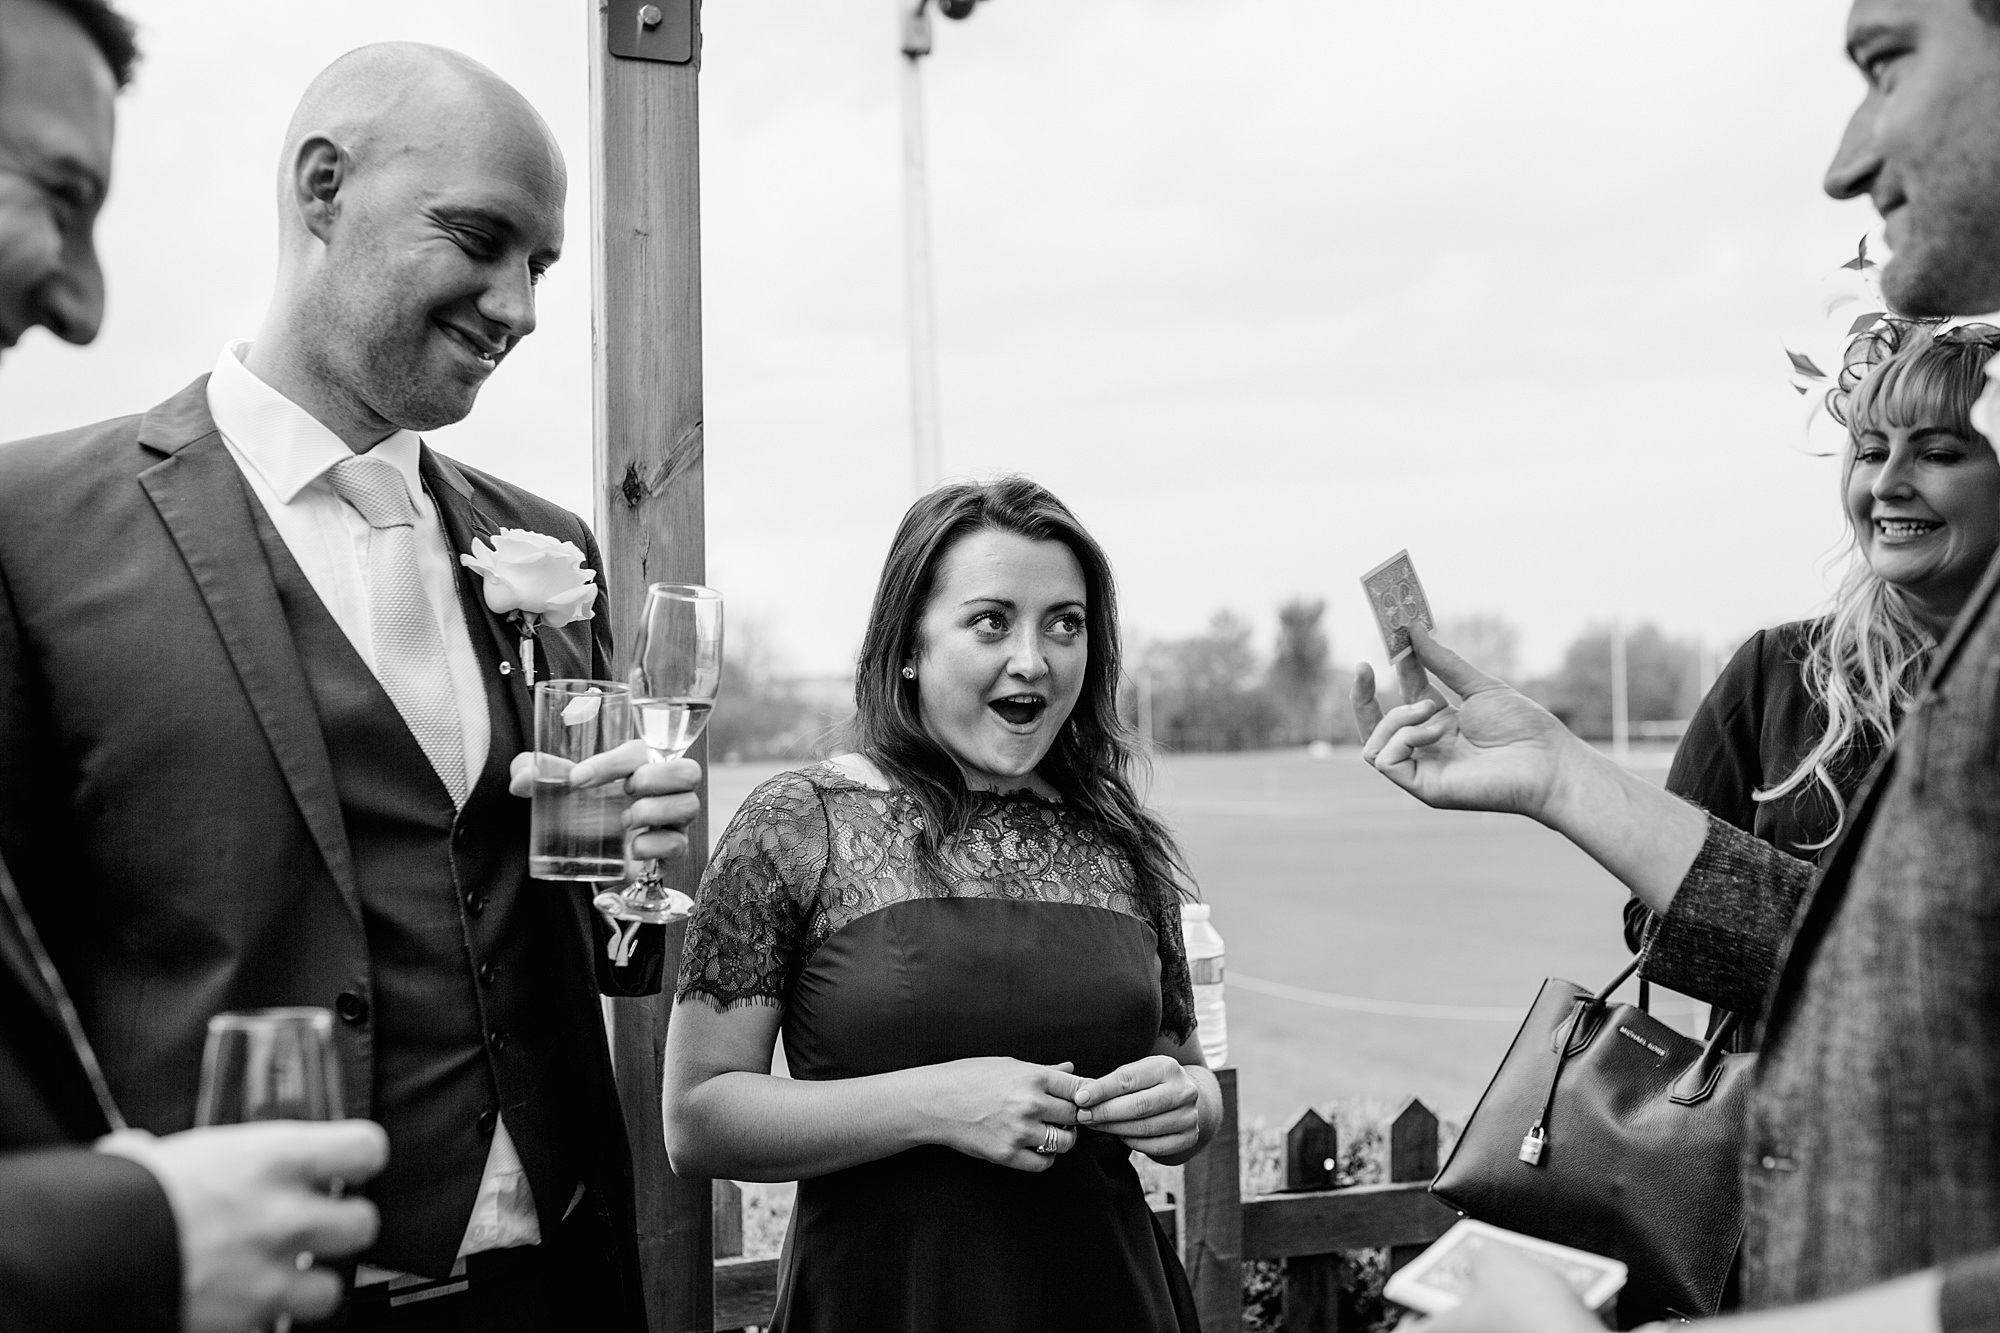 Bank of England Sports Centre wedding fun guest reaction to magic trick